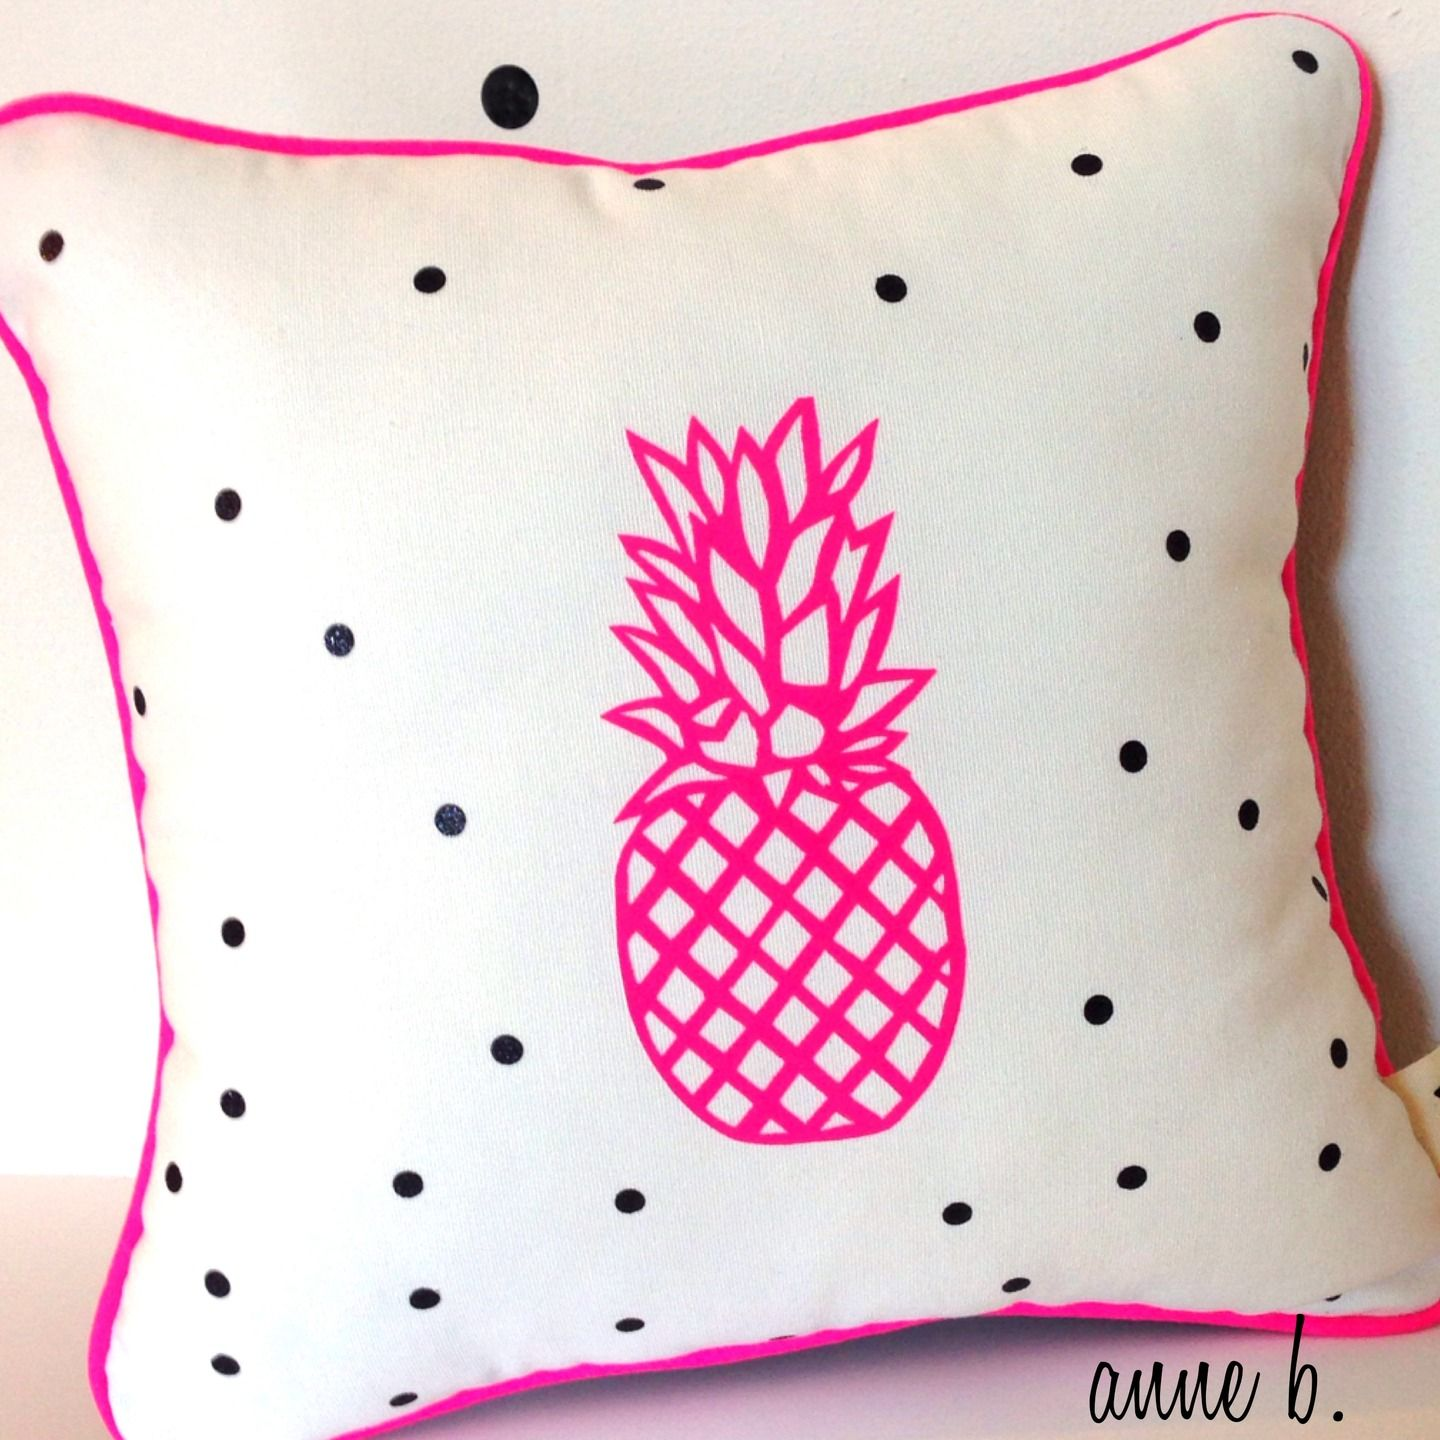 Coussin Pineapple Motif Ananas Rose Fluo Au Centre, Face Toile